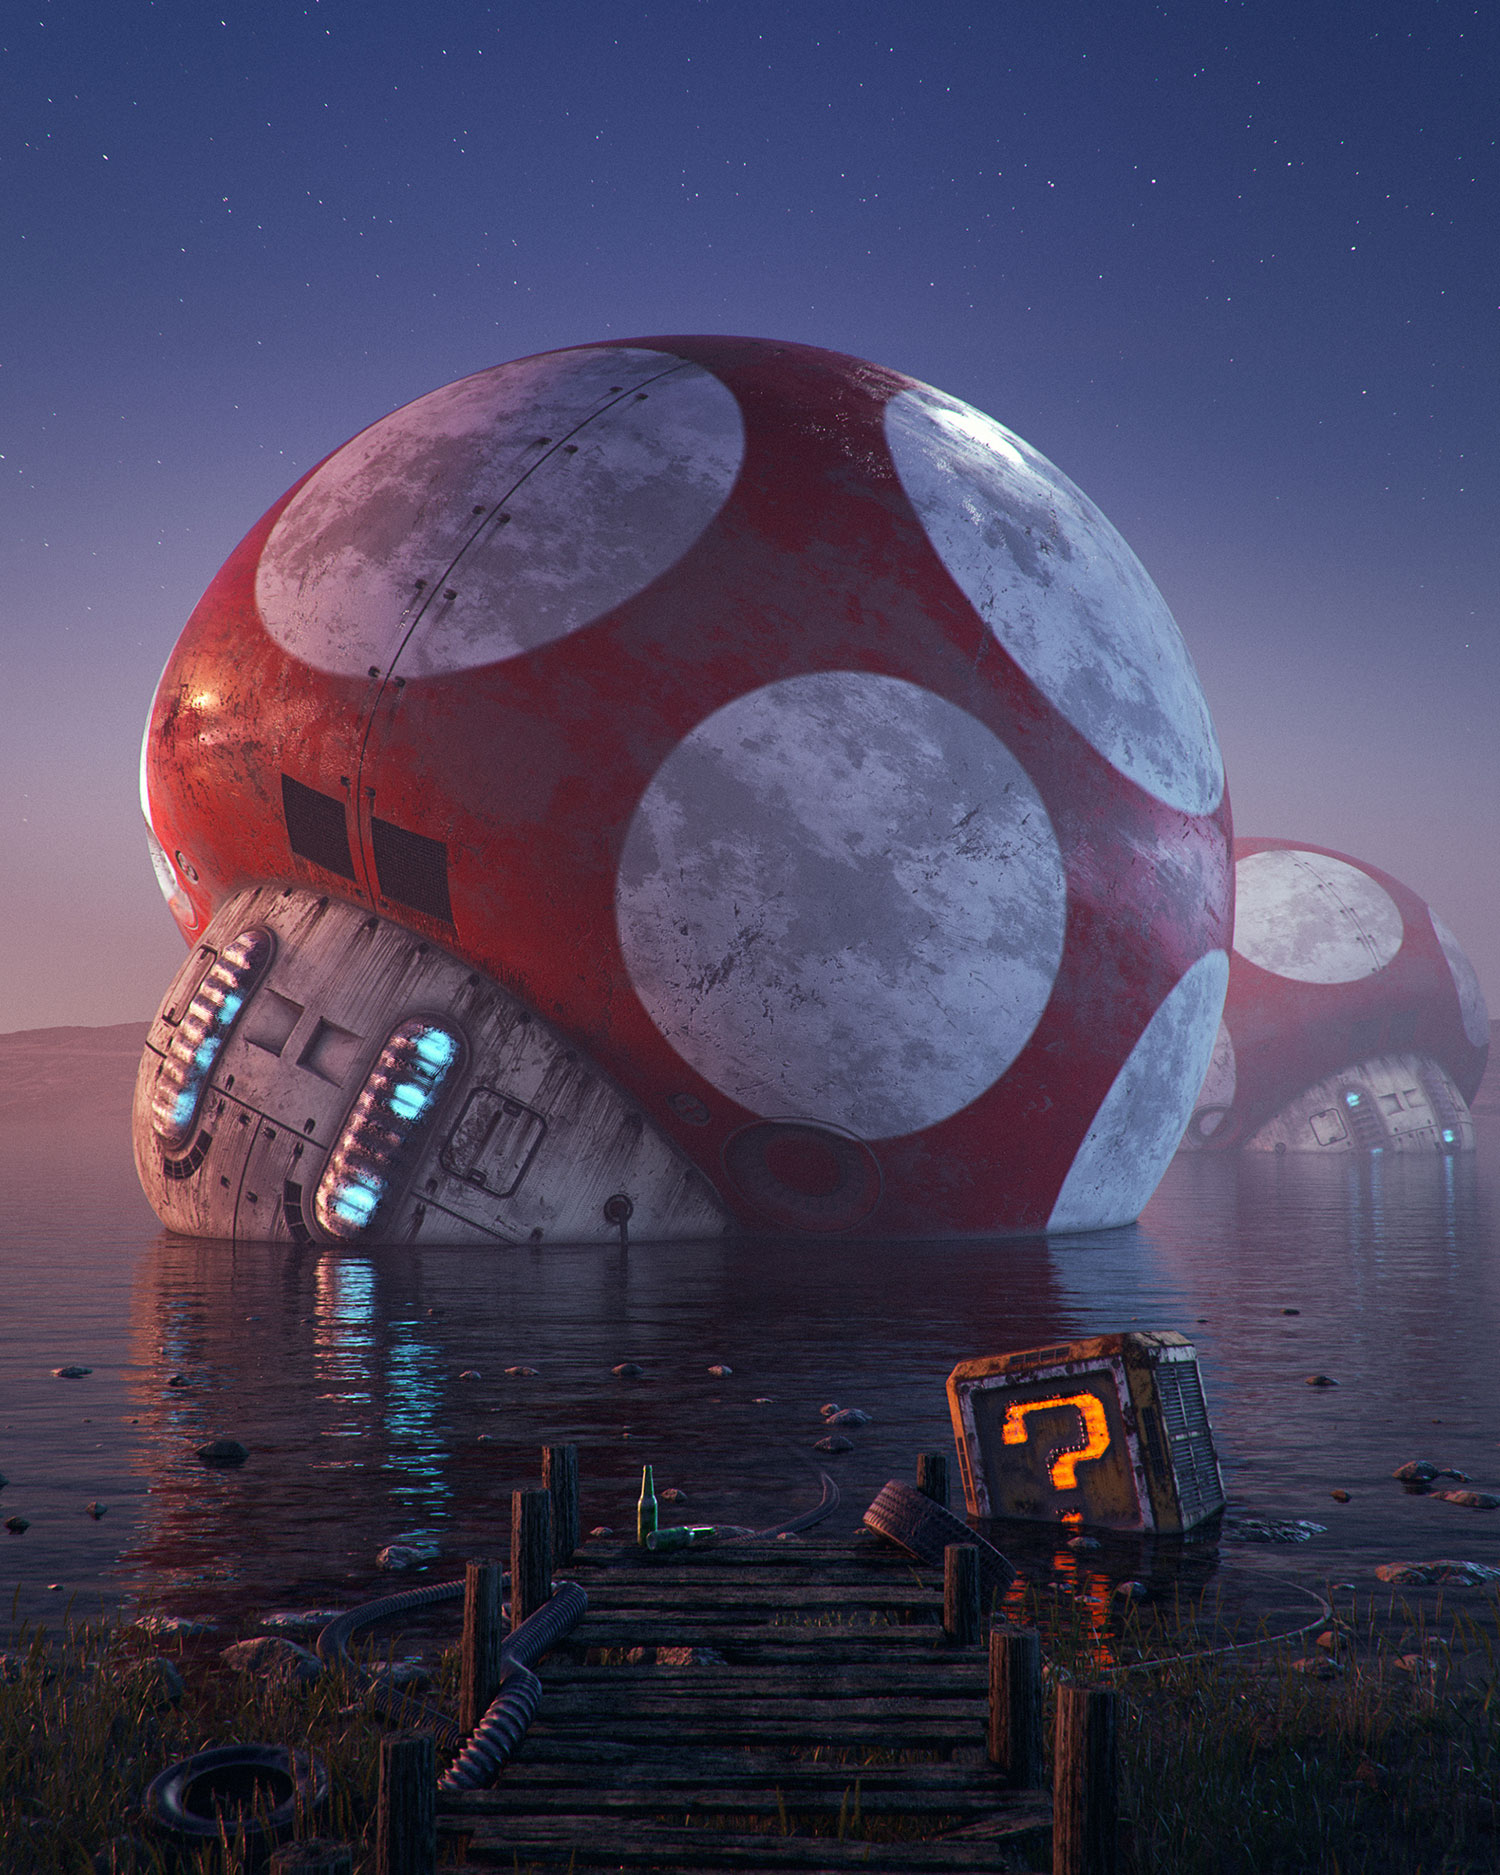 Filip Hodas - Pop culture dystopia, mushroom kingdom, Mario